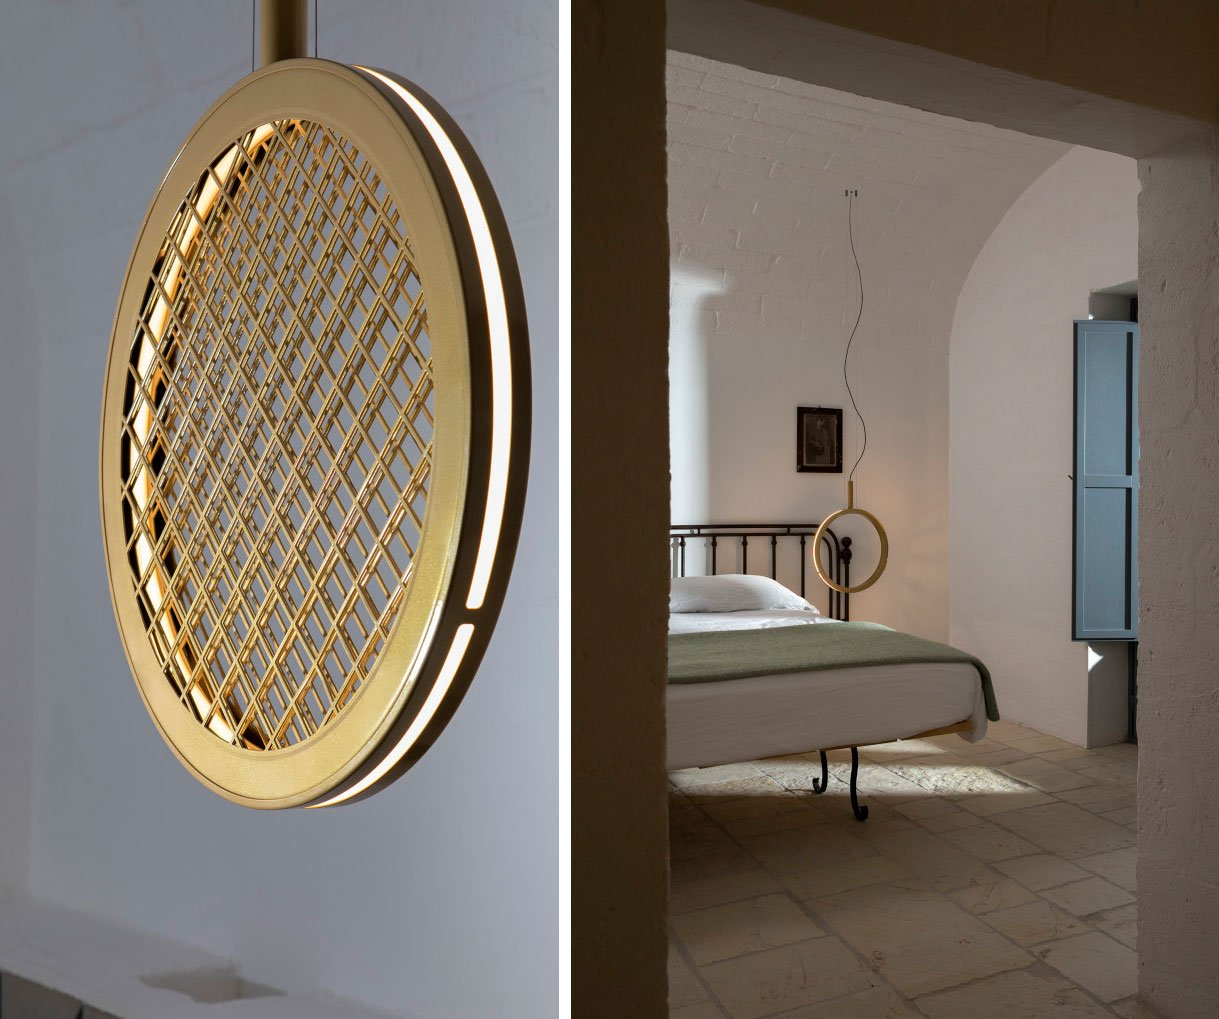 PERIPLO ring of light  - with and without metal weave -  by Dario De Meo & Luca De Bona for Karman.